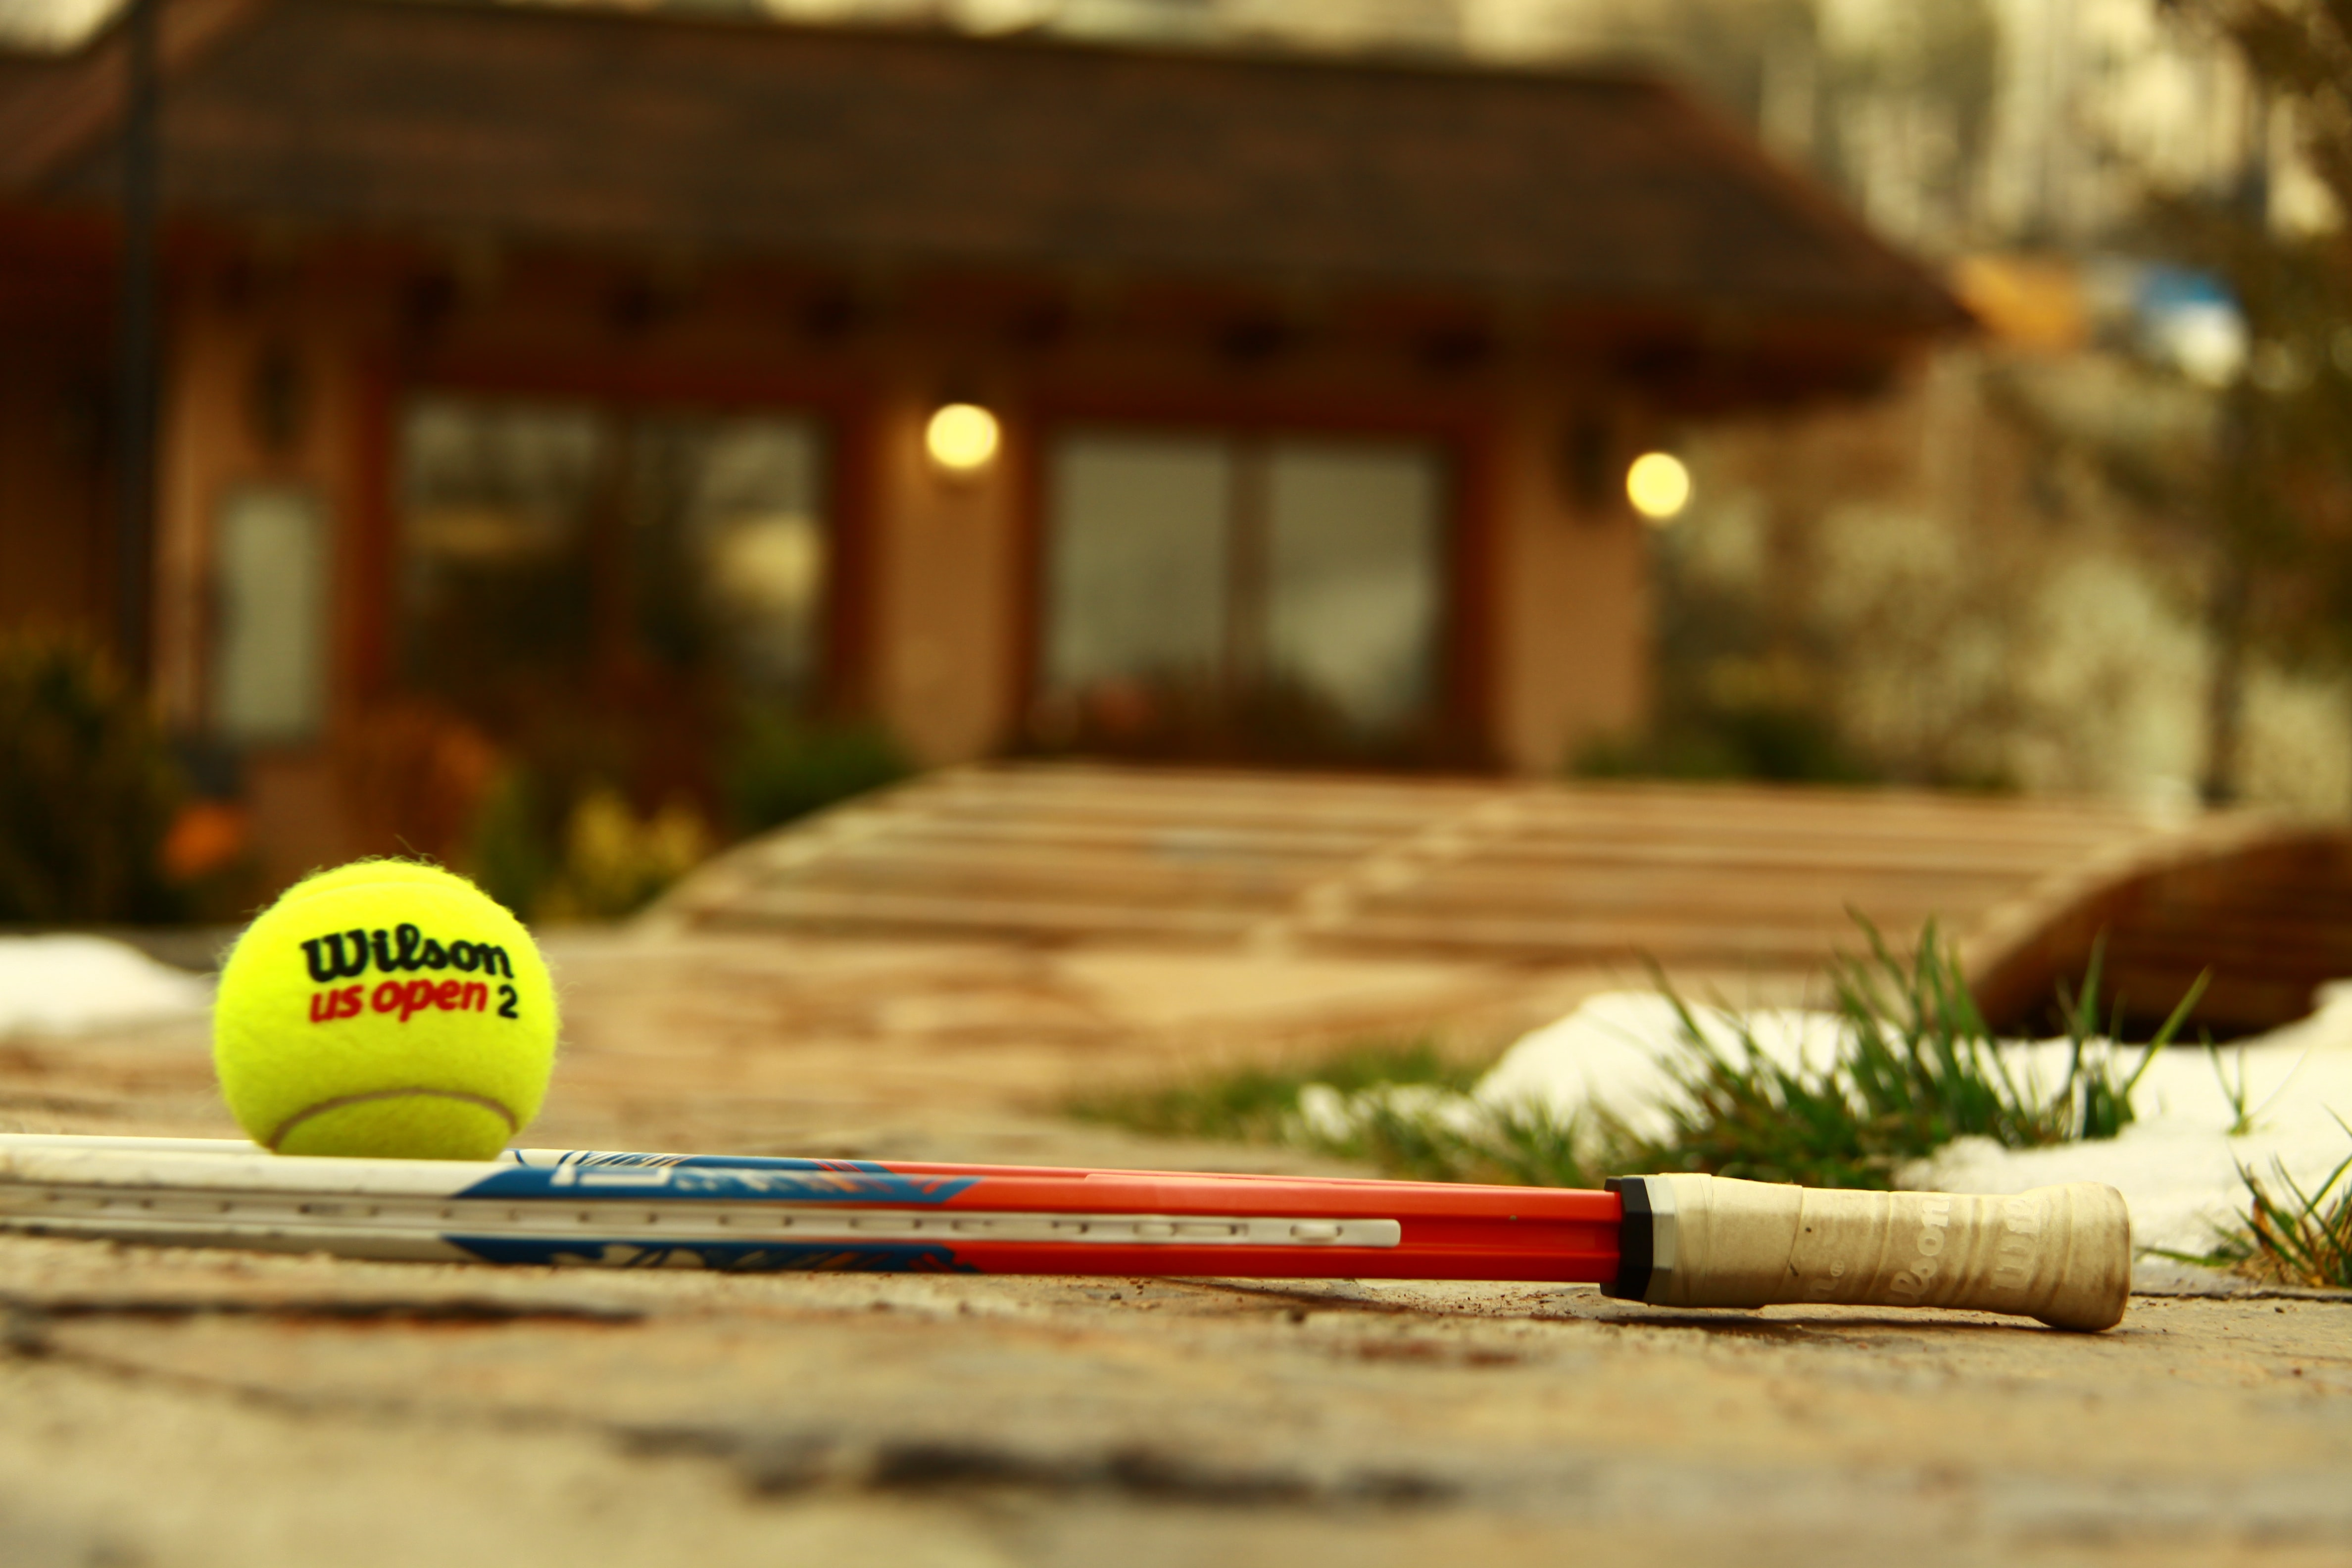 Tennis balls vs the court: picking the right ball